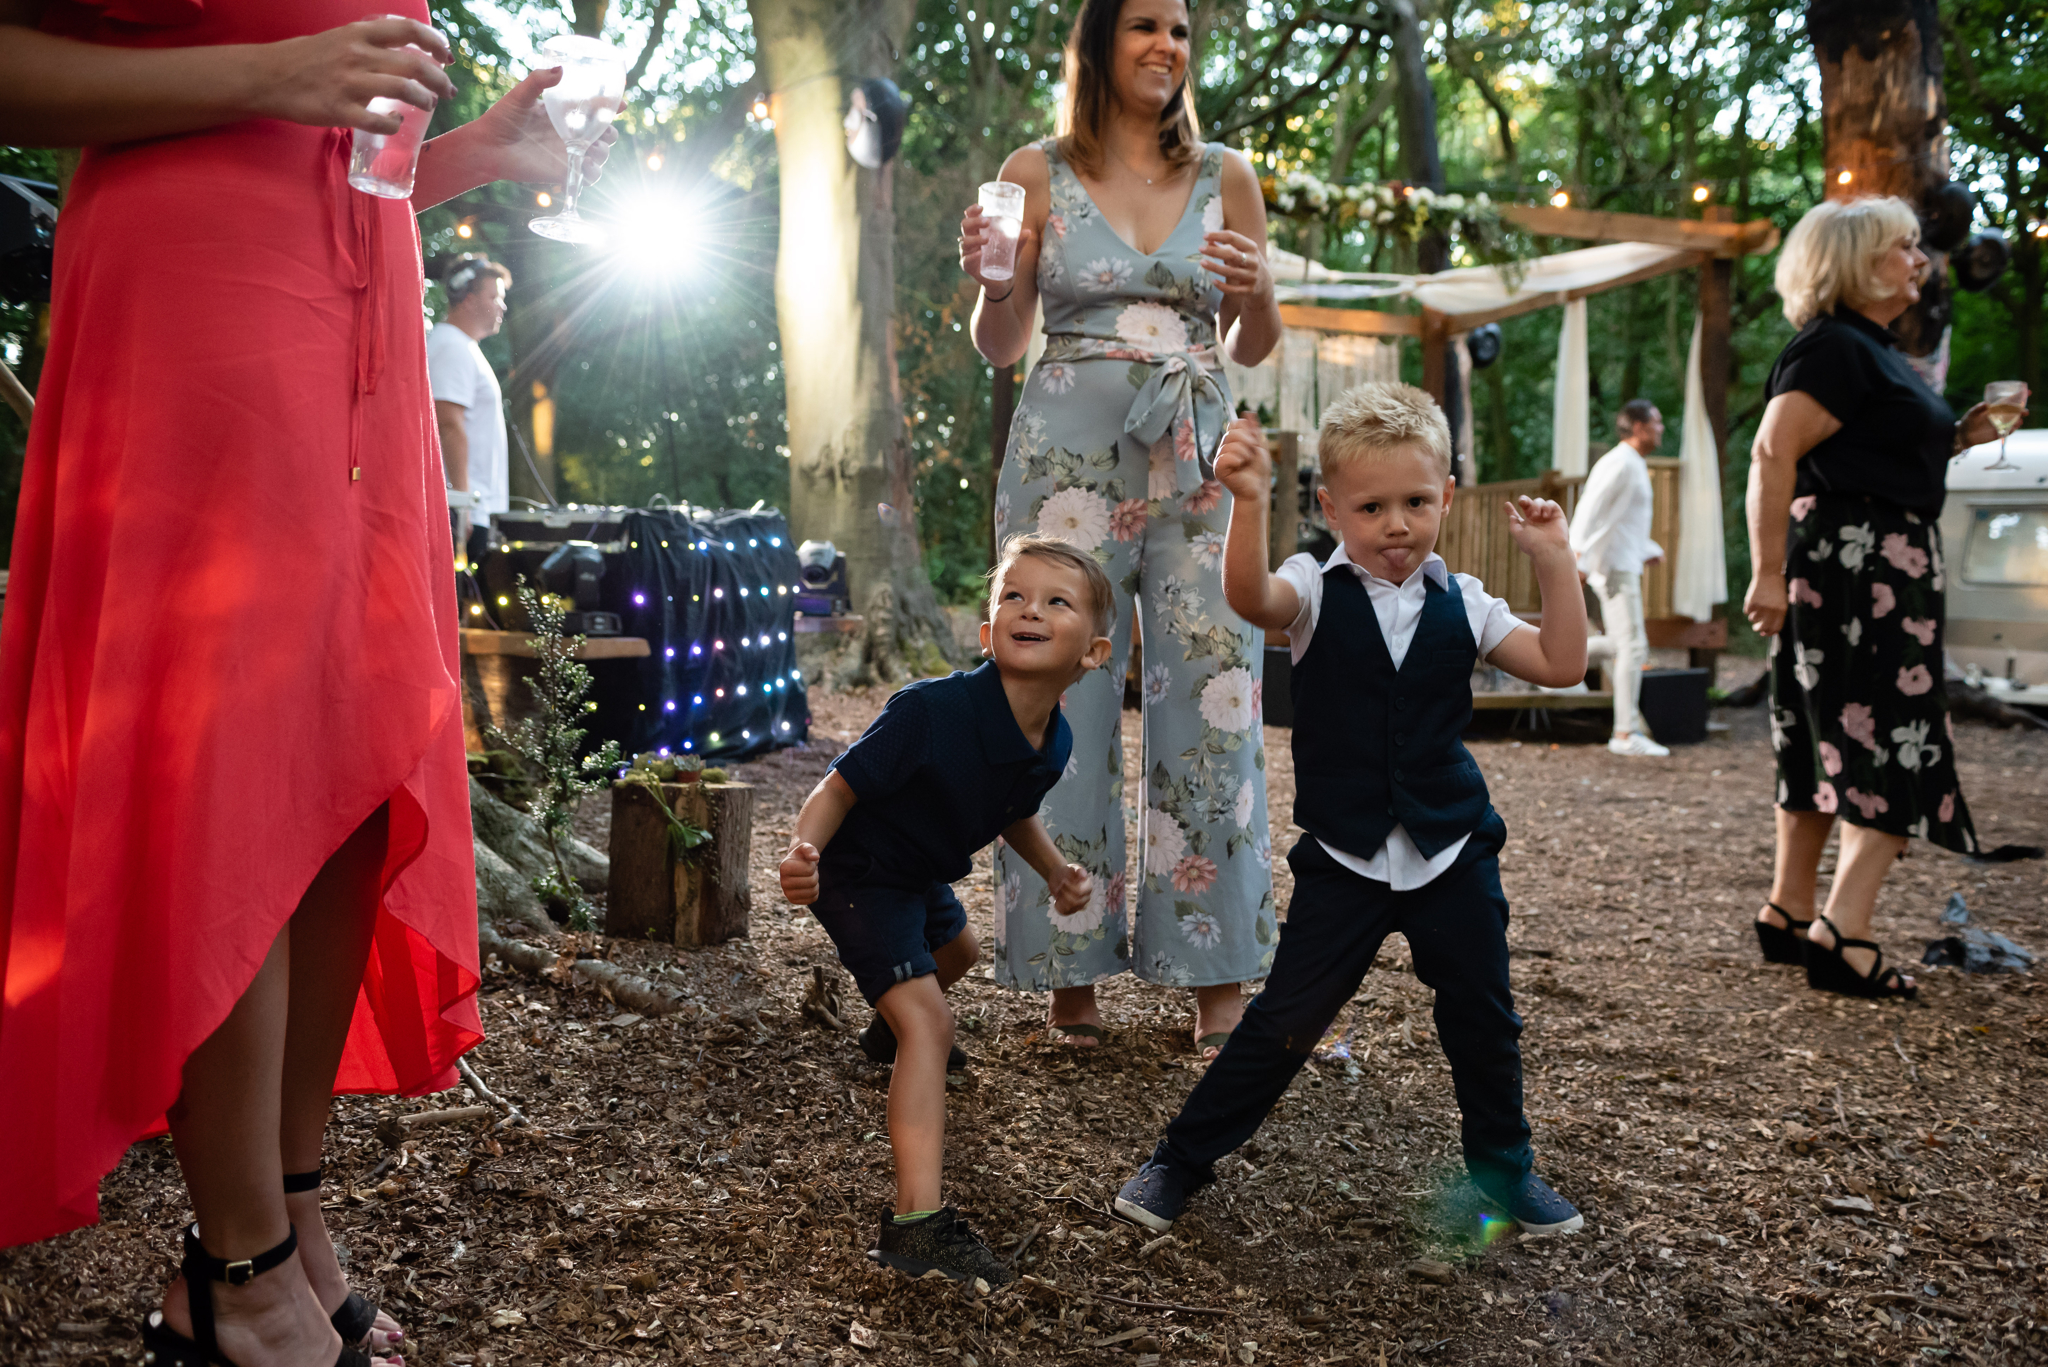 Boys dancing at Woodland Weddings